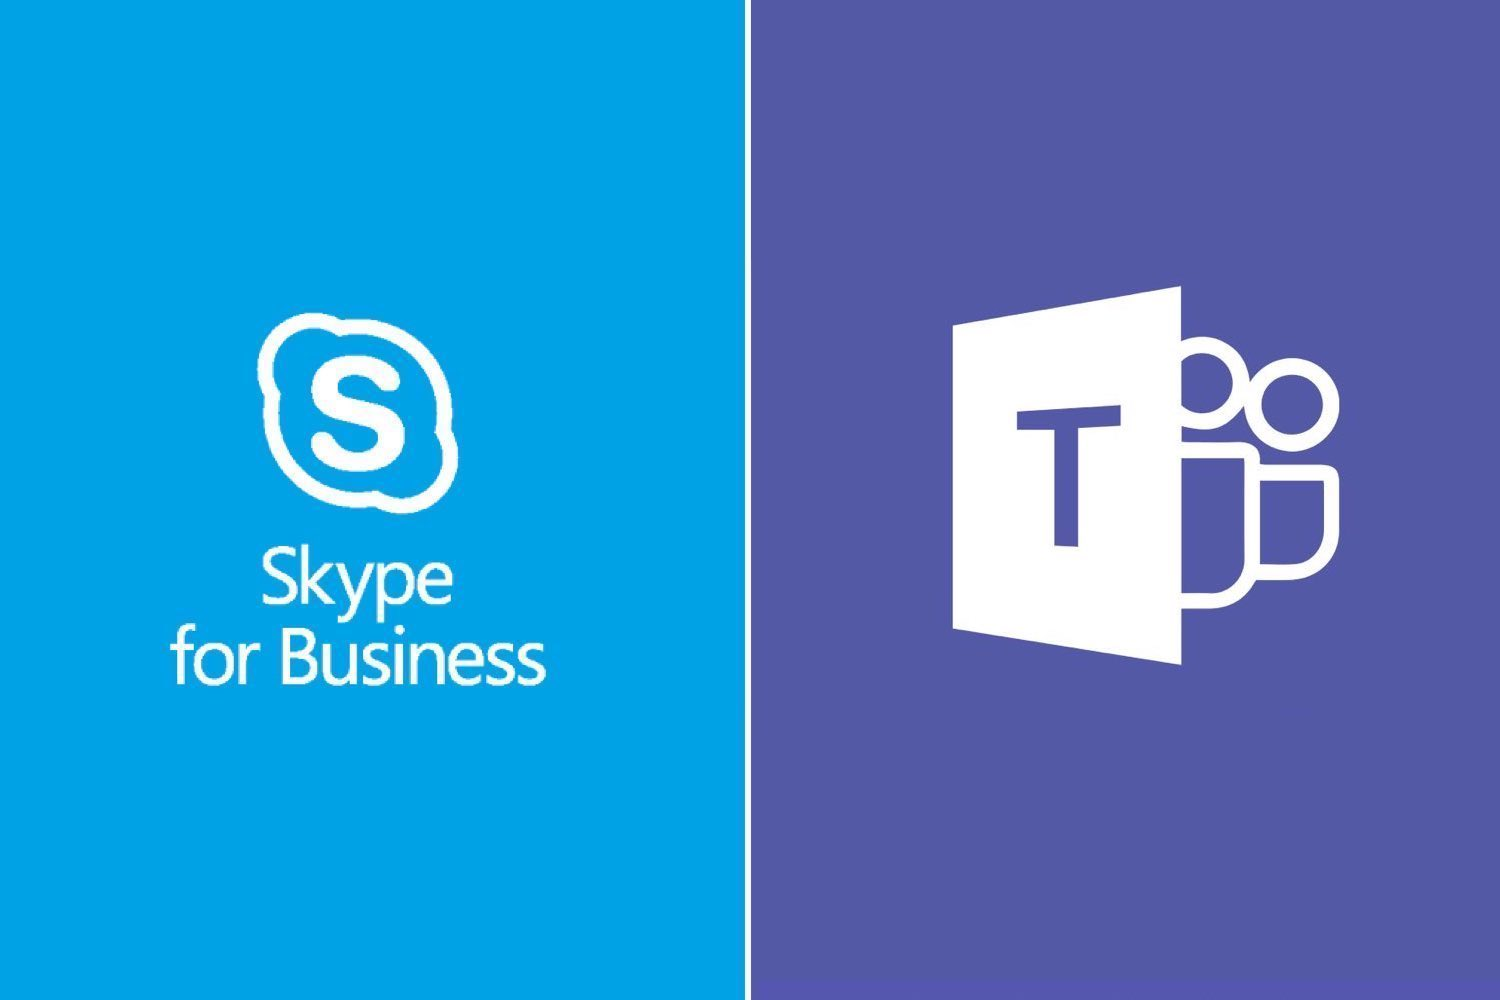 microsoft teams, skype business